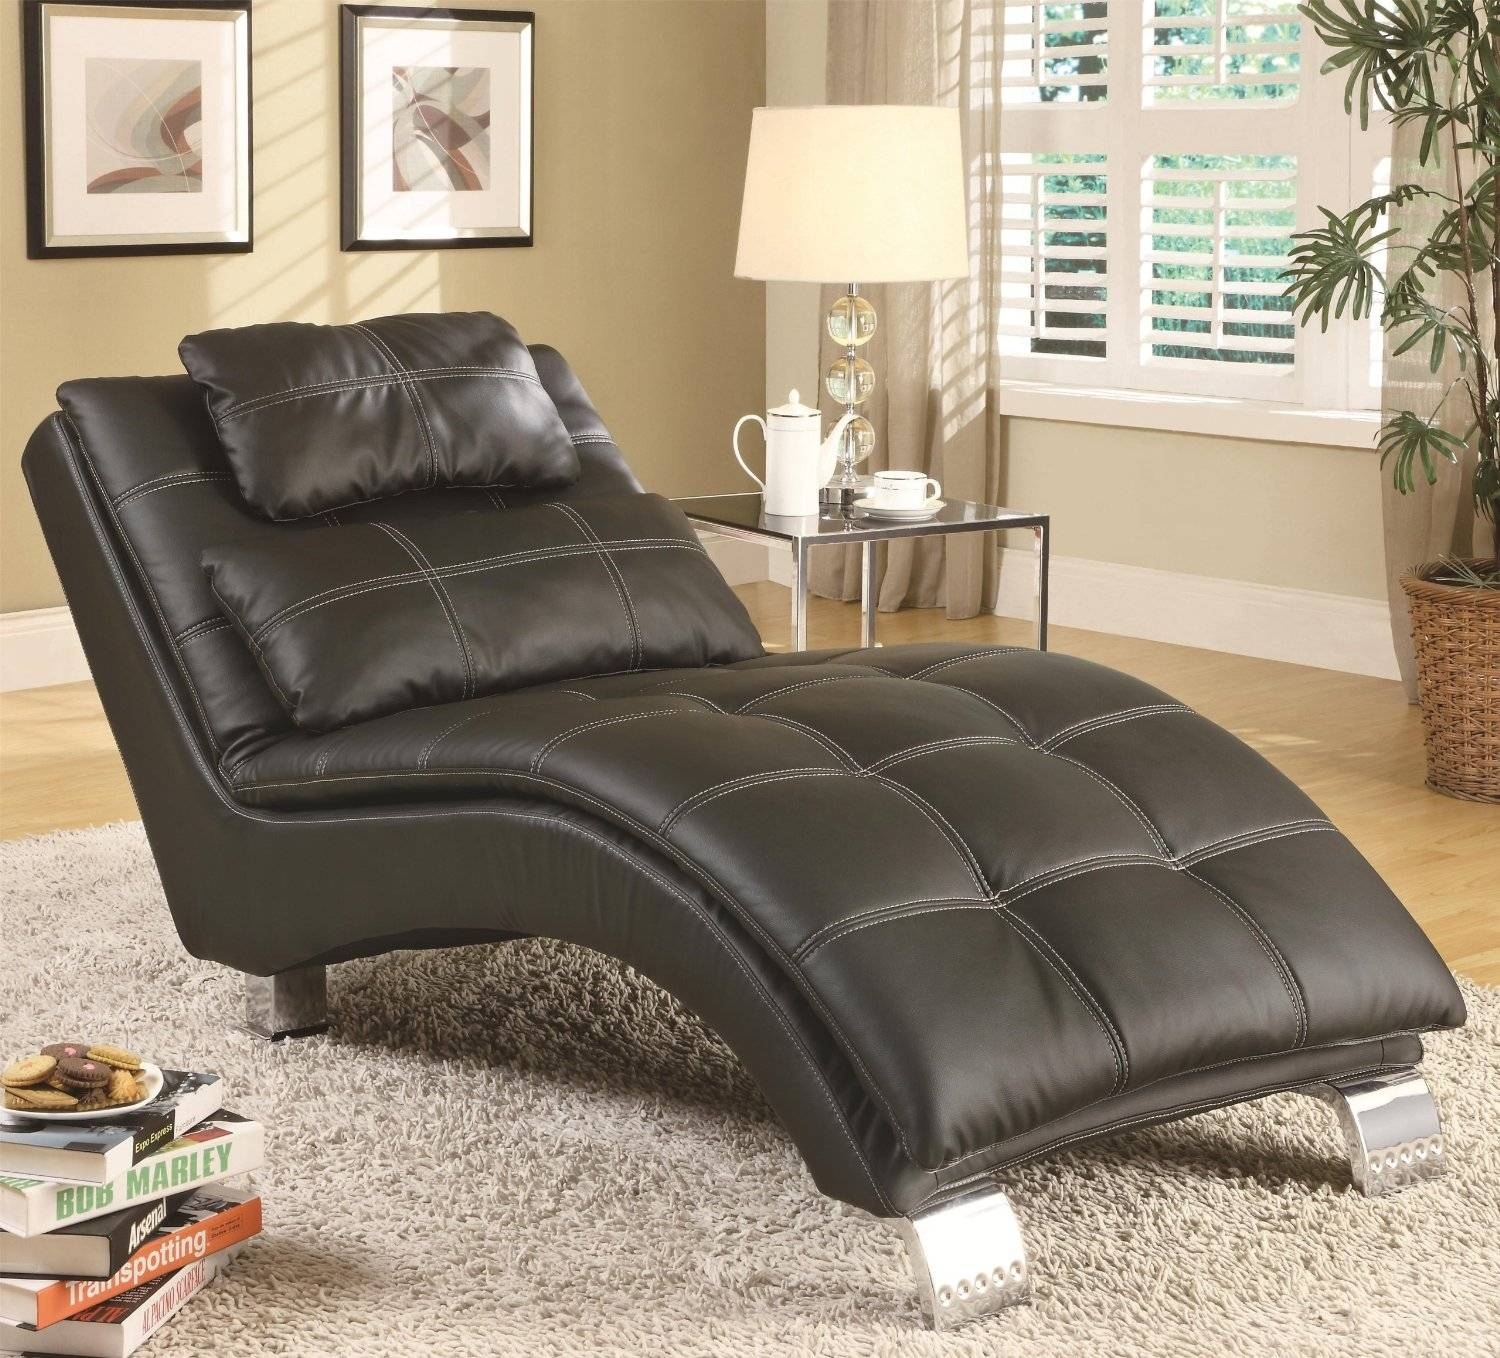 Black Leather Couch Chaise Lounge Living Room Lounges Fair To Top inside Chaise Sofa Chairs (Image 3 of 15)